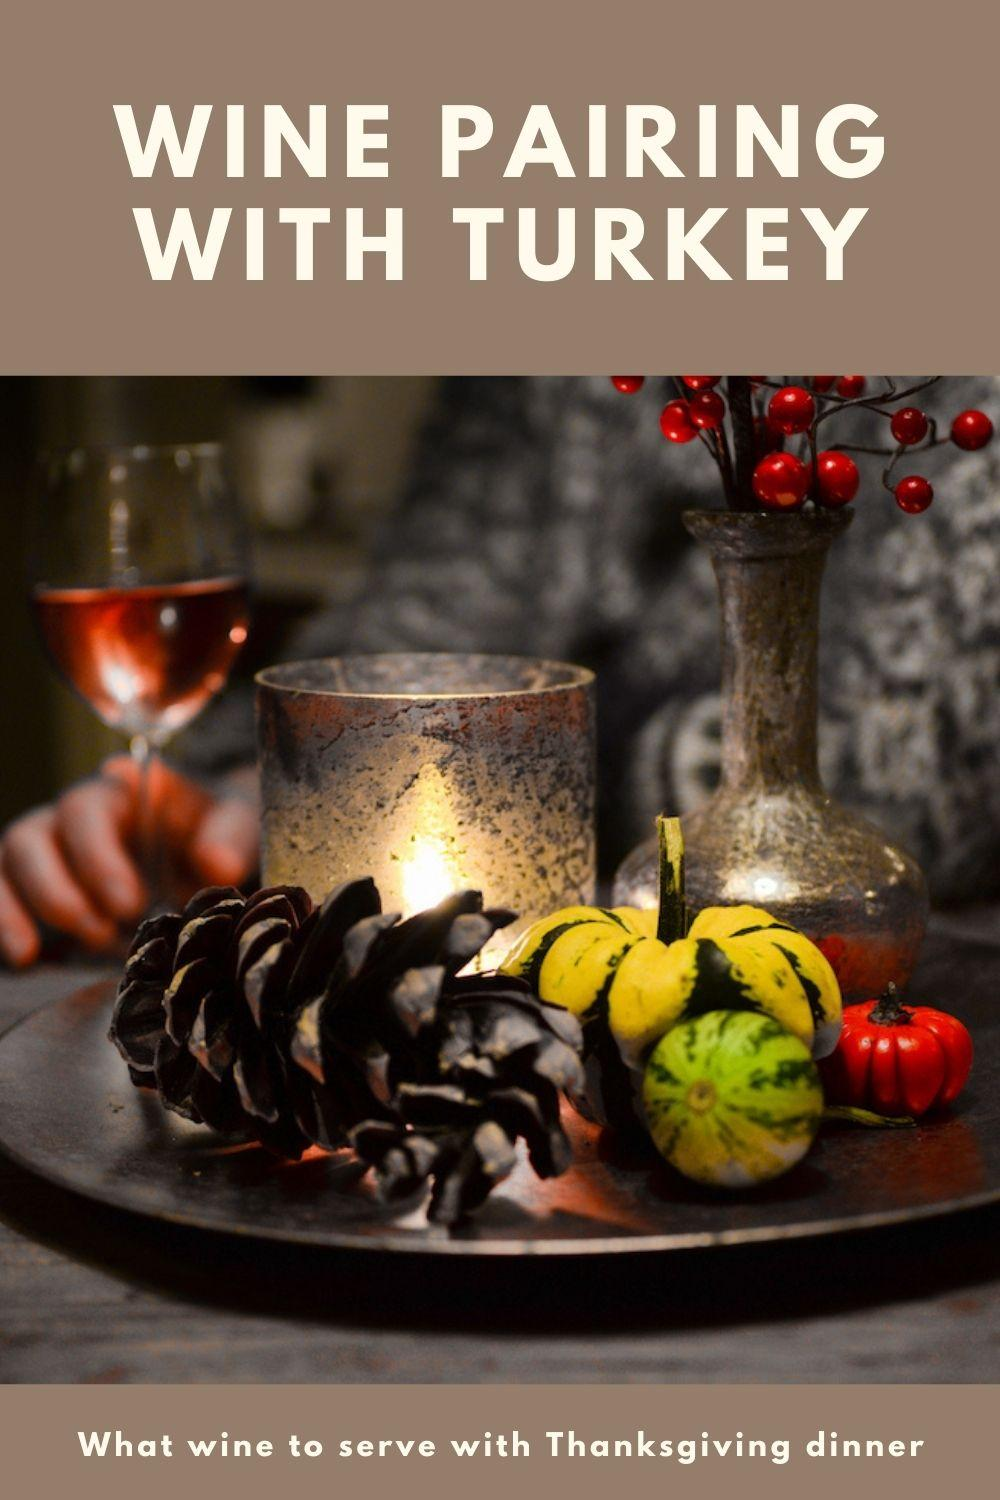 Wine pairing with turkey Thanksgiving graphic